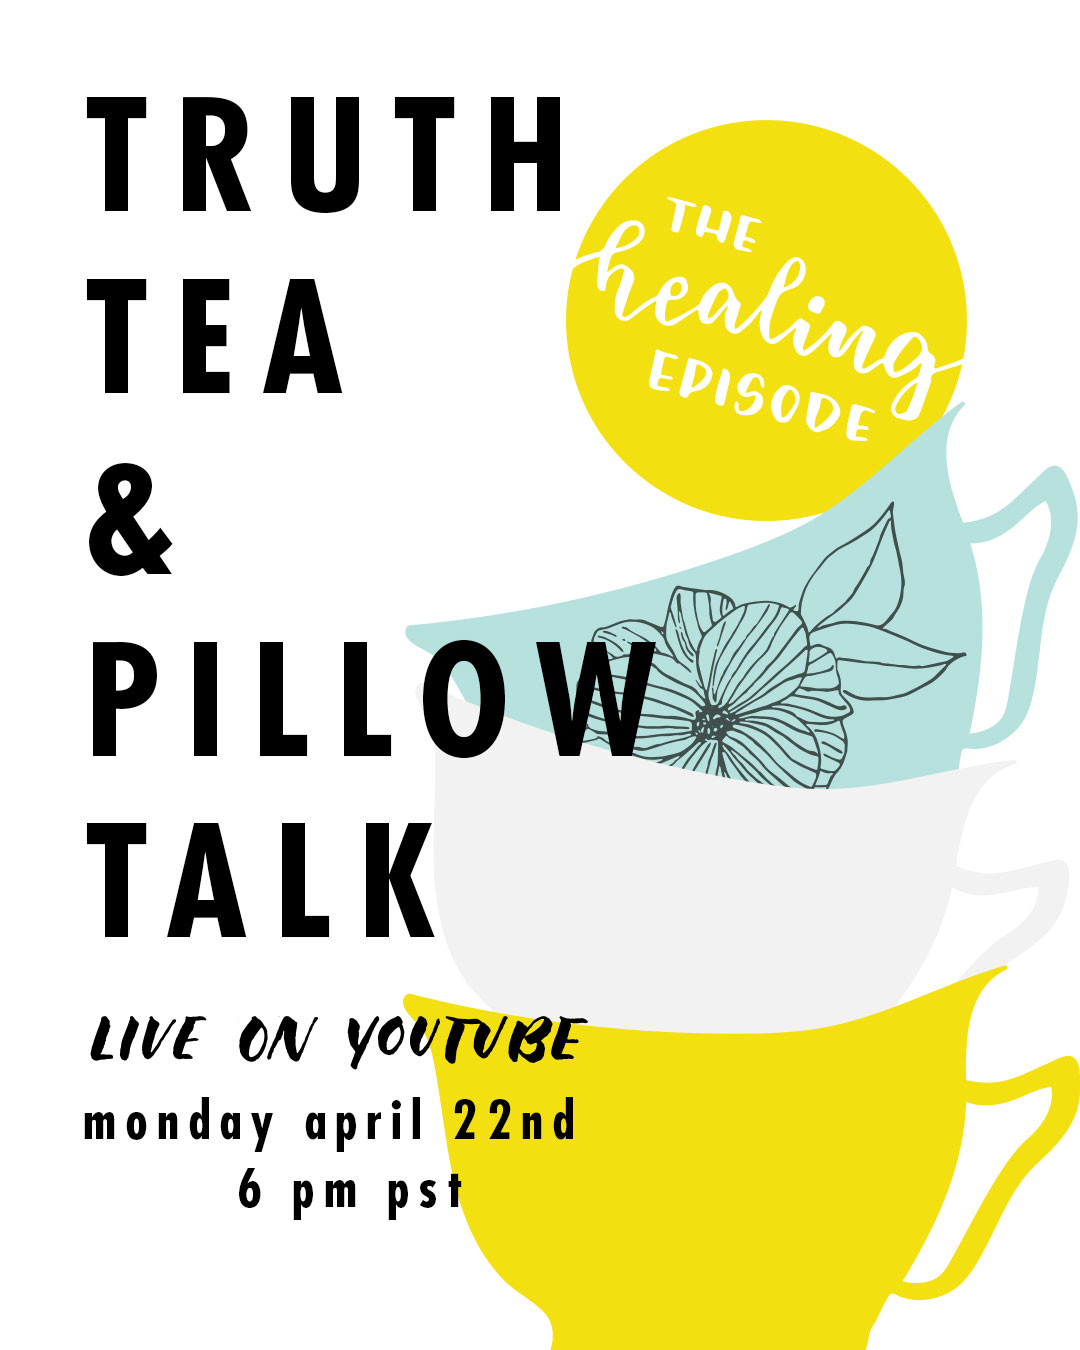 truth-tea-and-pillow-talk-flyer-ep4.jpg